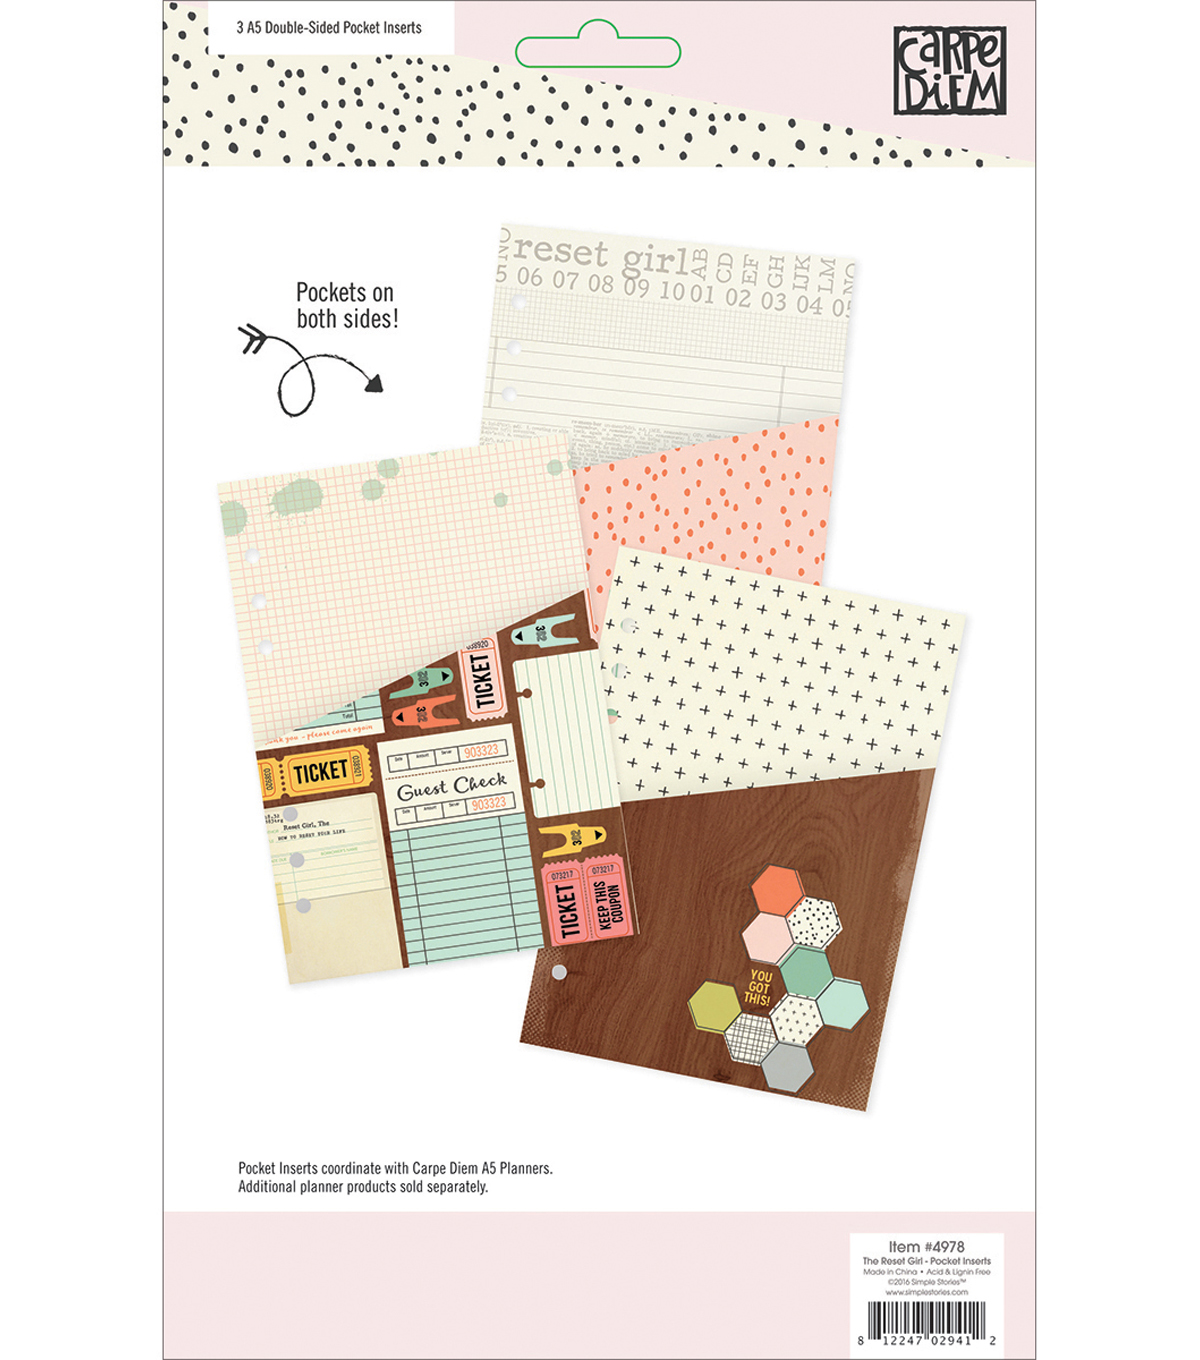 Simple Stories Carpe Diem The Reset Girl A5 Double-Sided Pocket Inserts